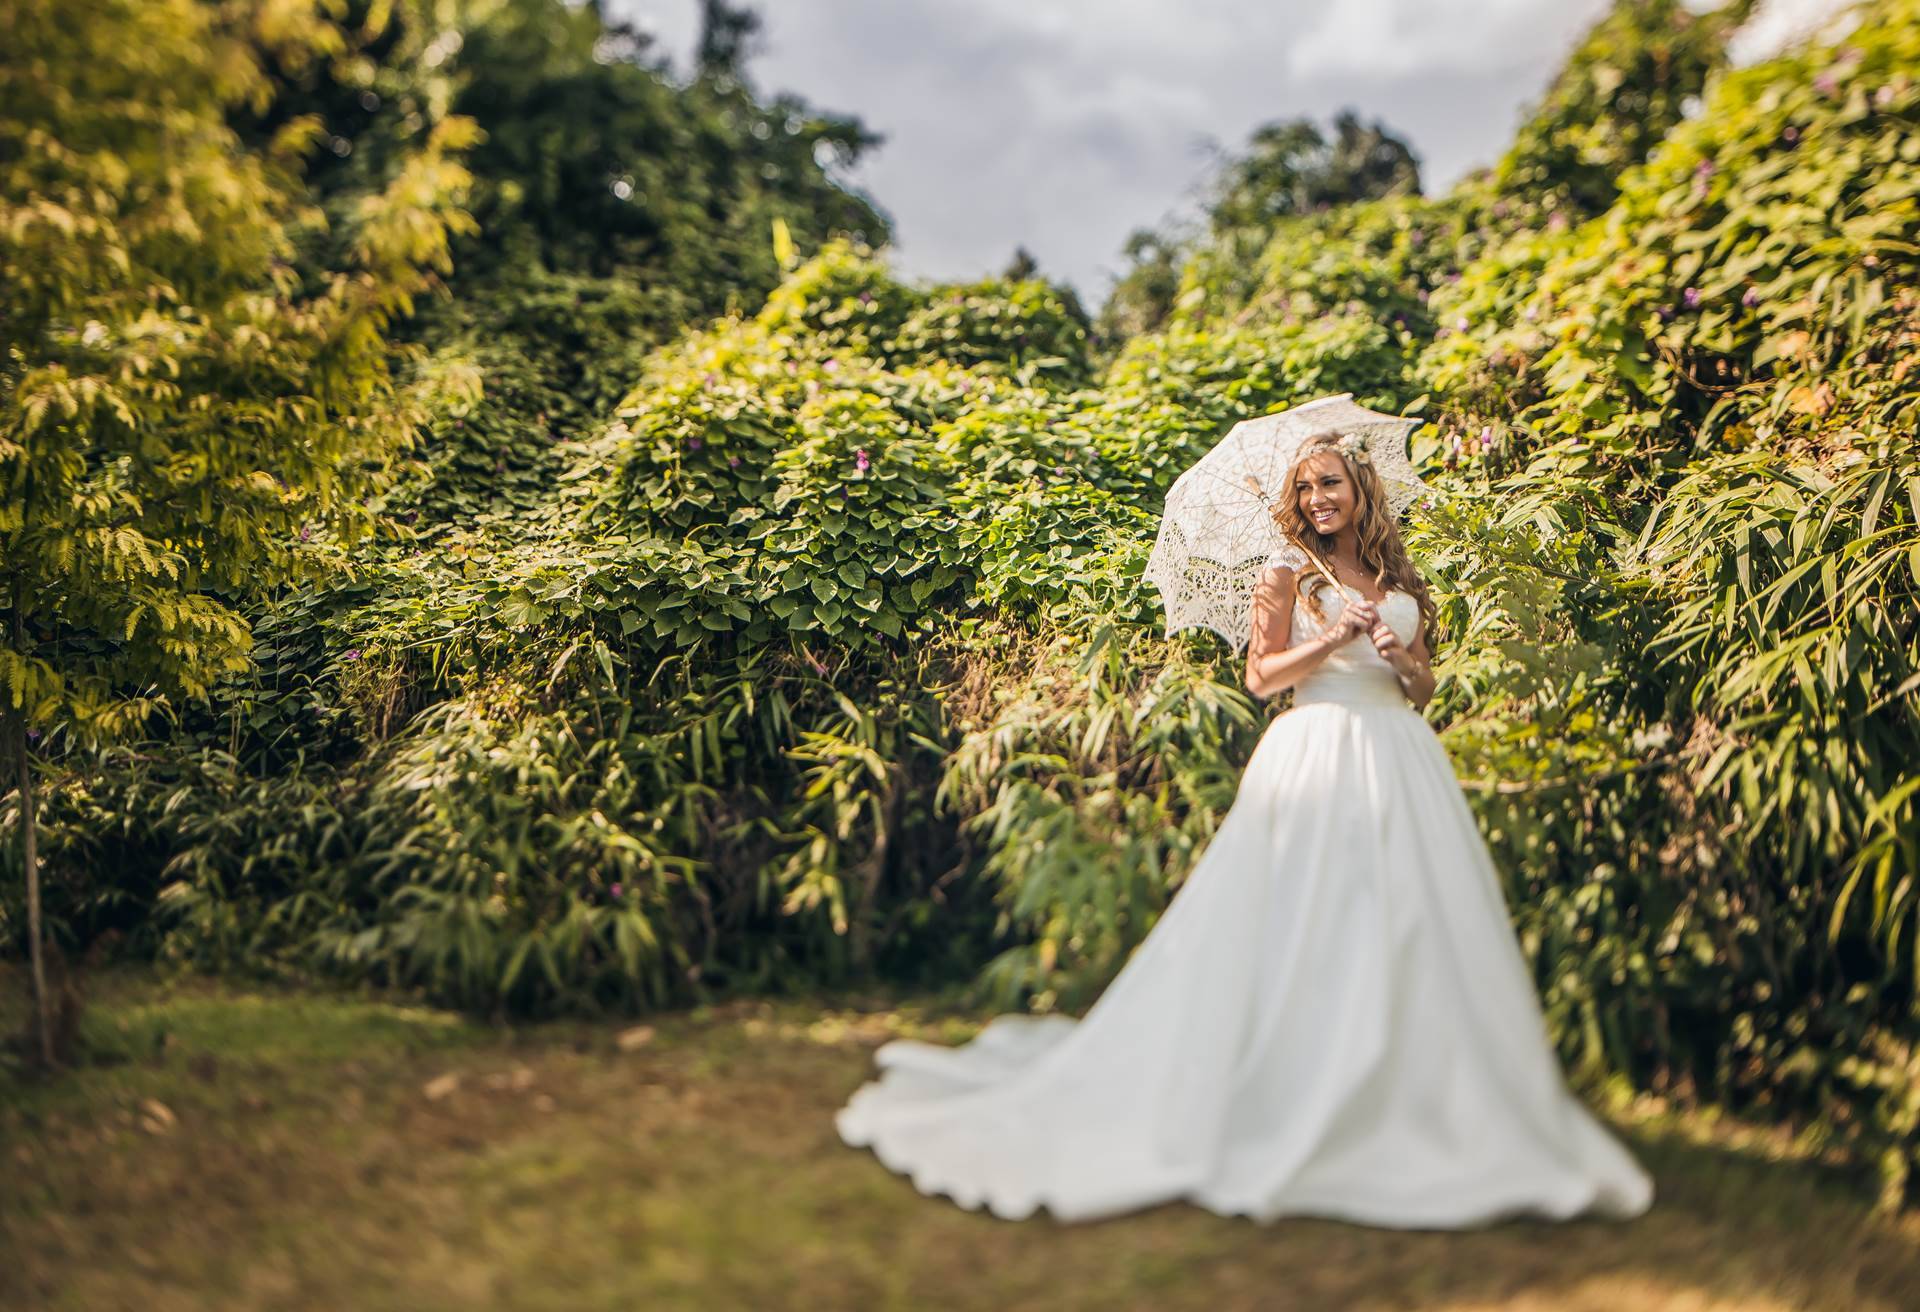 How to have an unplugged wedding copy n paste wording